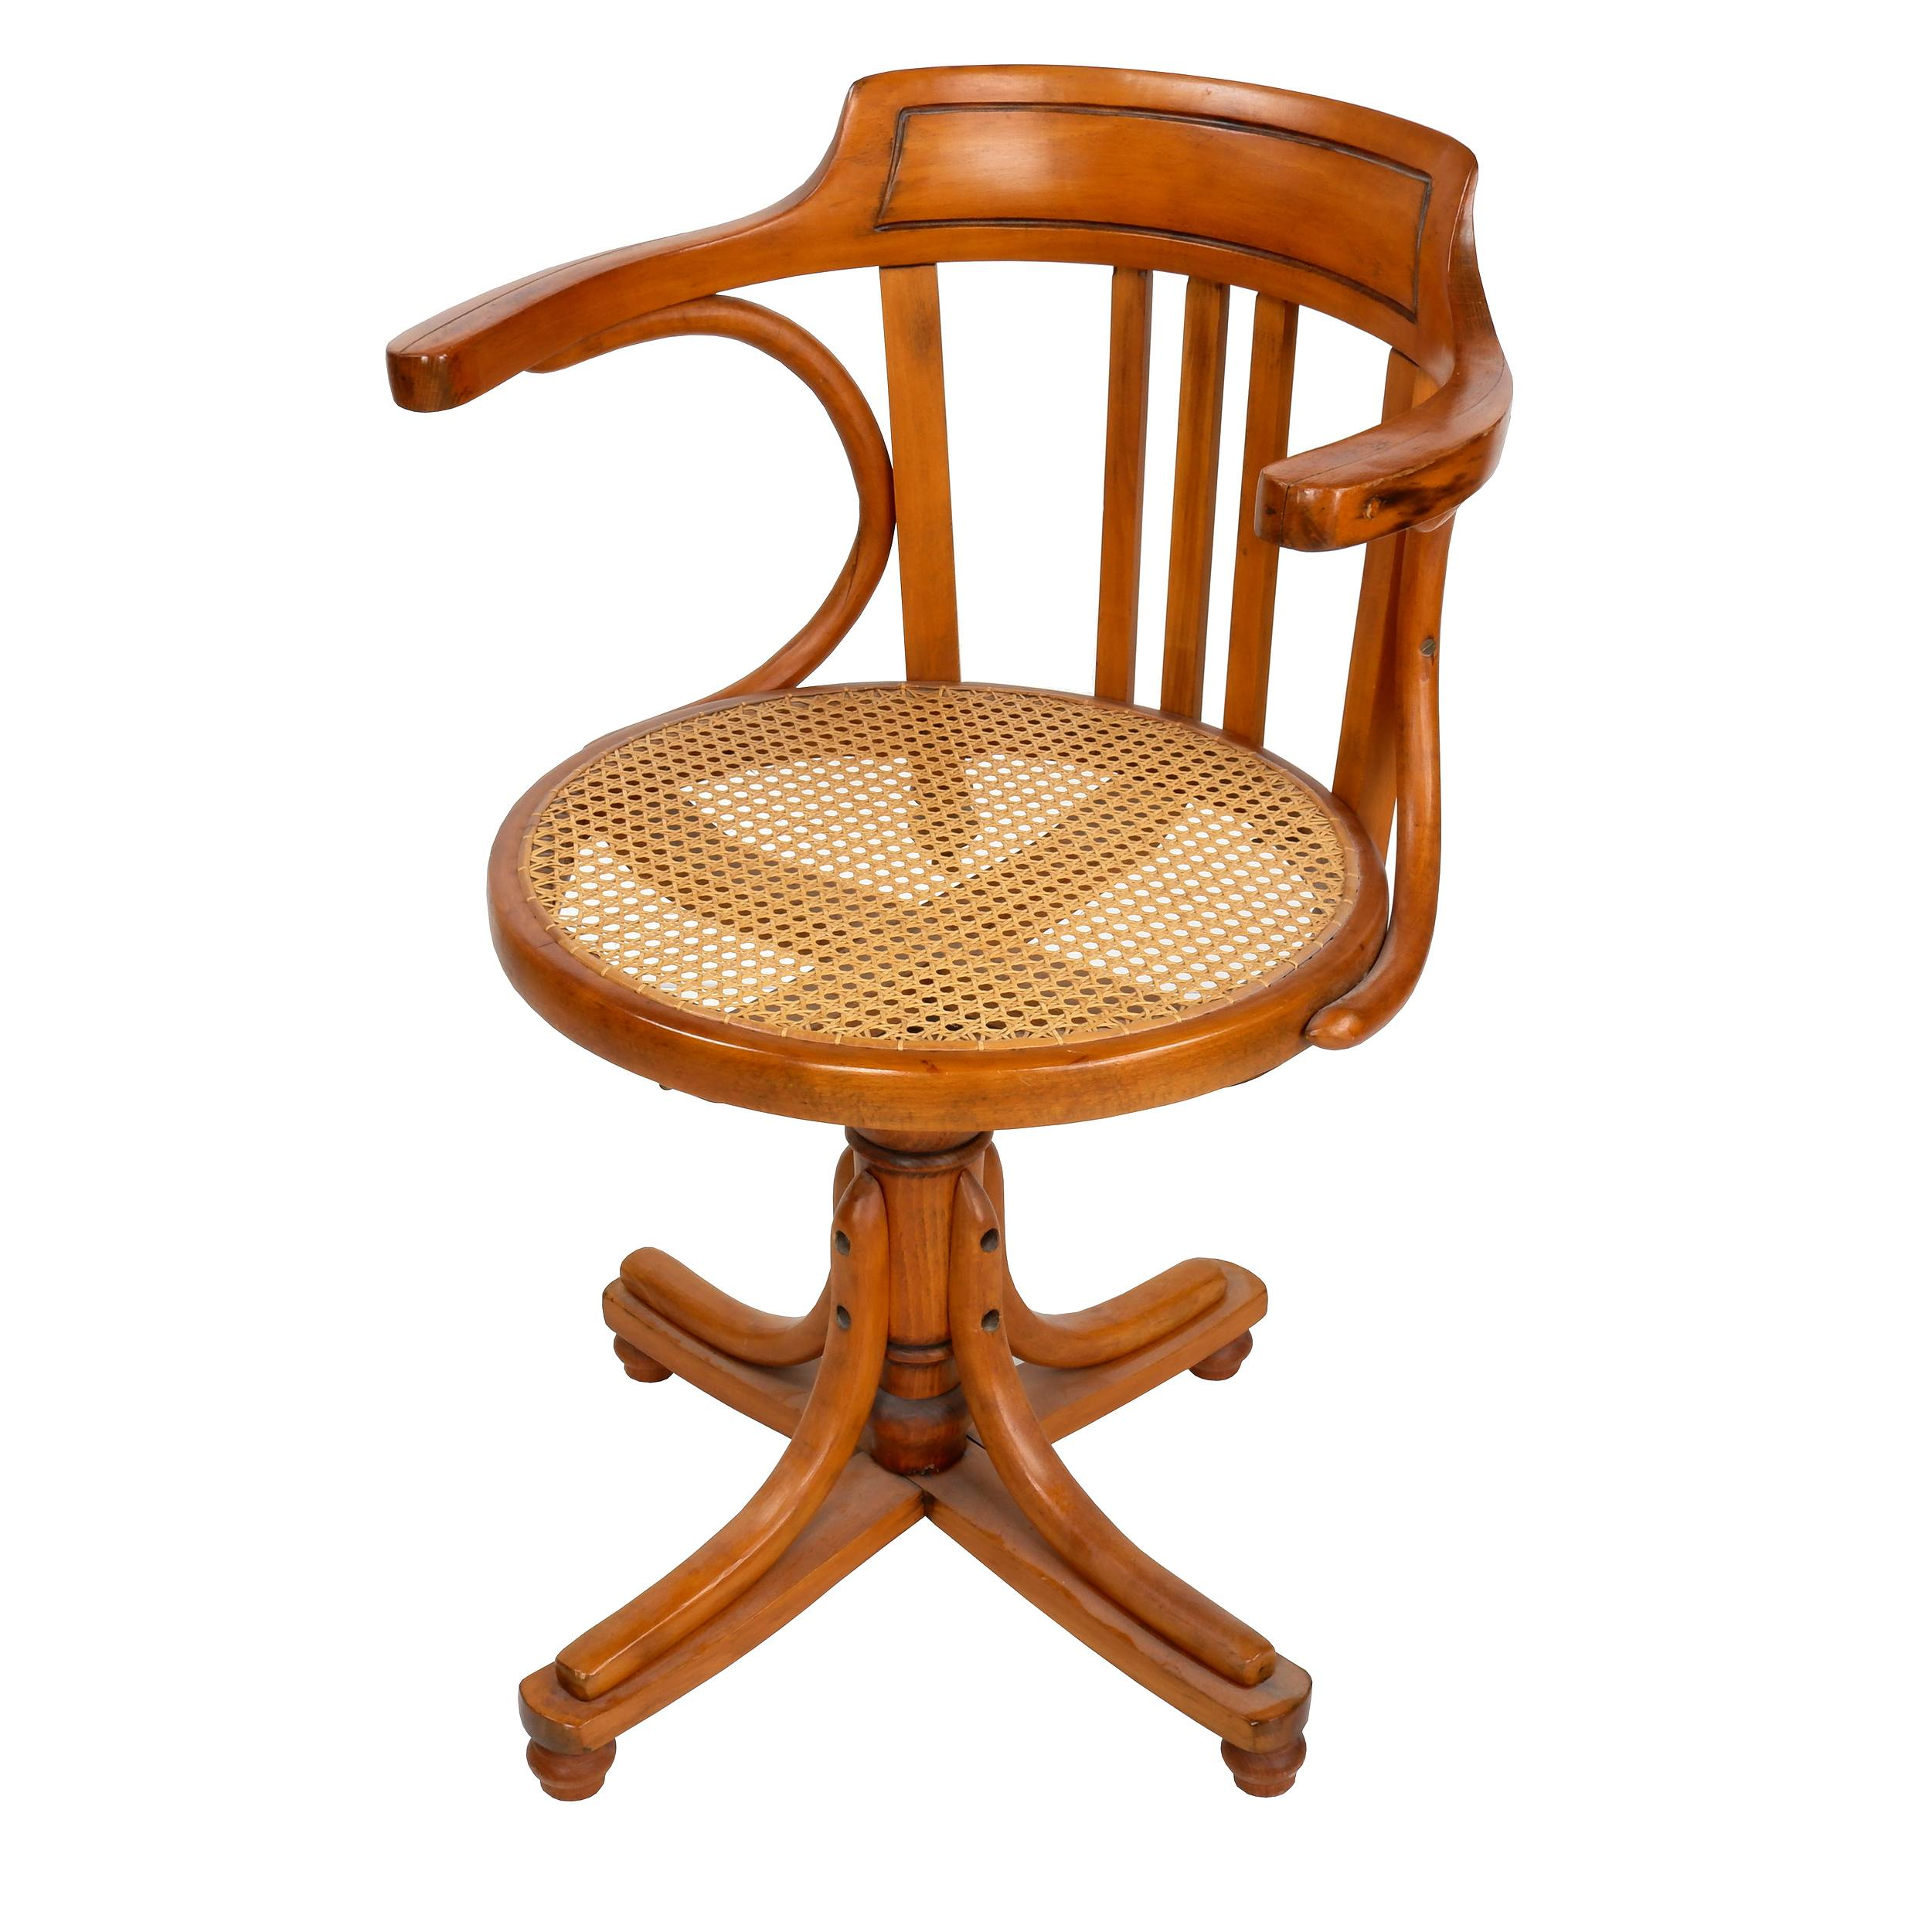 'European Beech Captains Chair with Woven Rattan Seat, Early 20th Century'